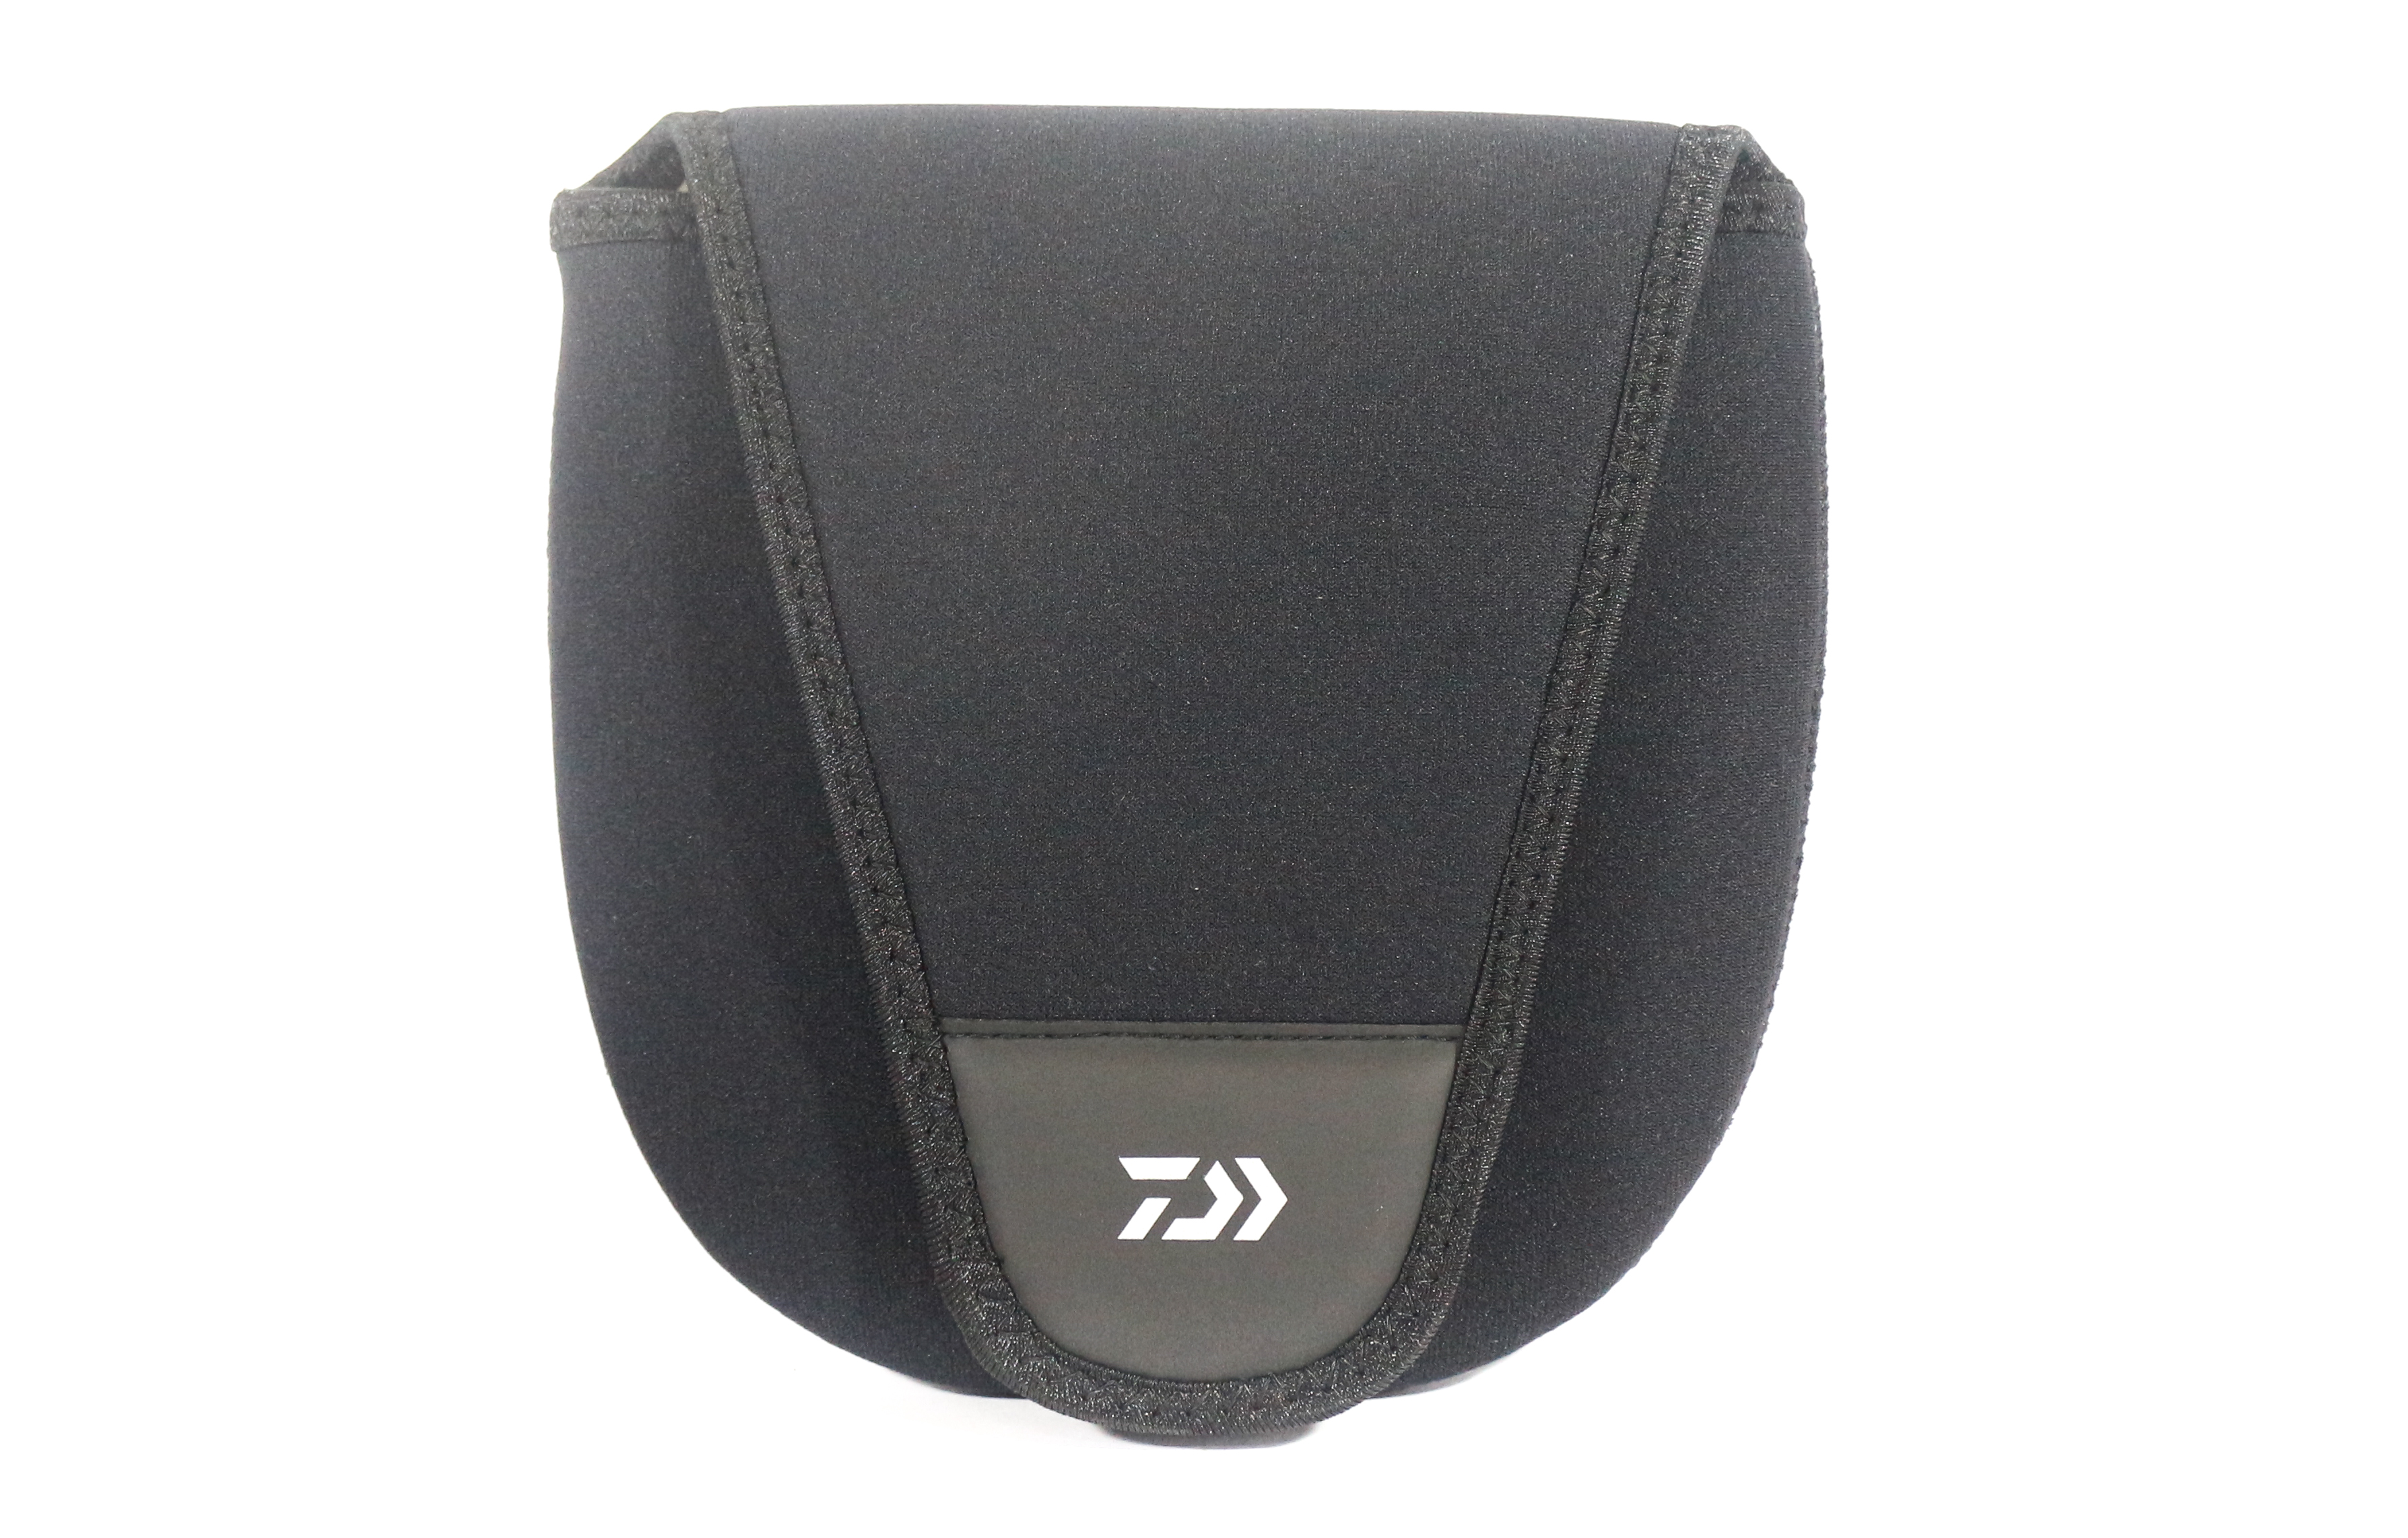 Sale Daiwa CV-L Soft Case for Daiwa Baitcast Reel 500 - 750 Size 797061